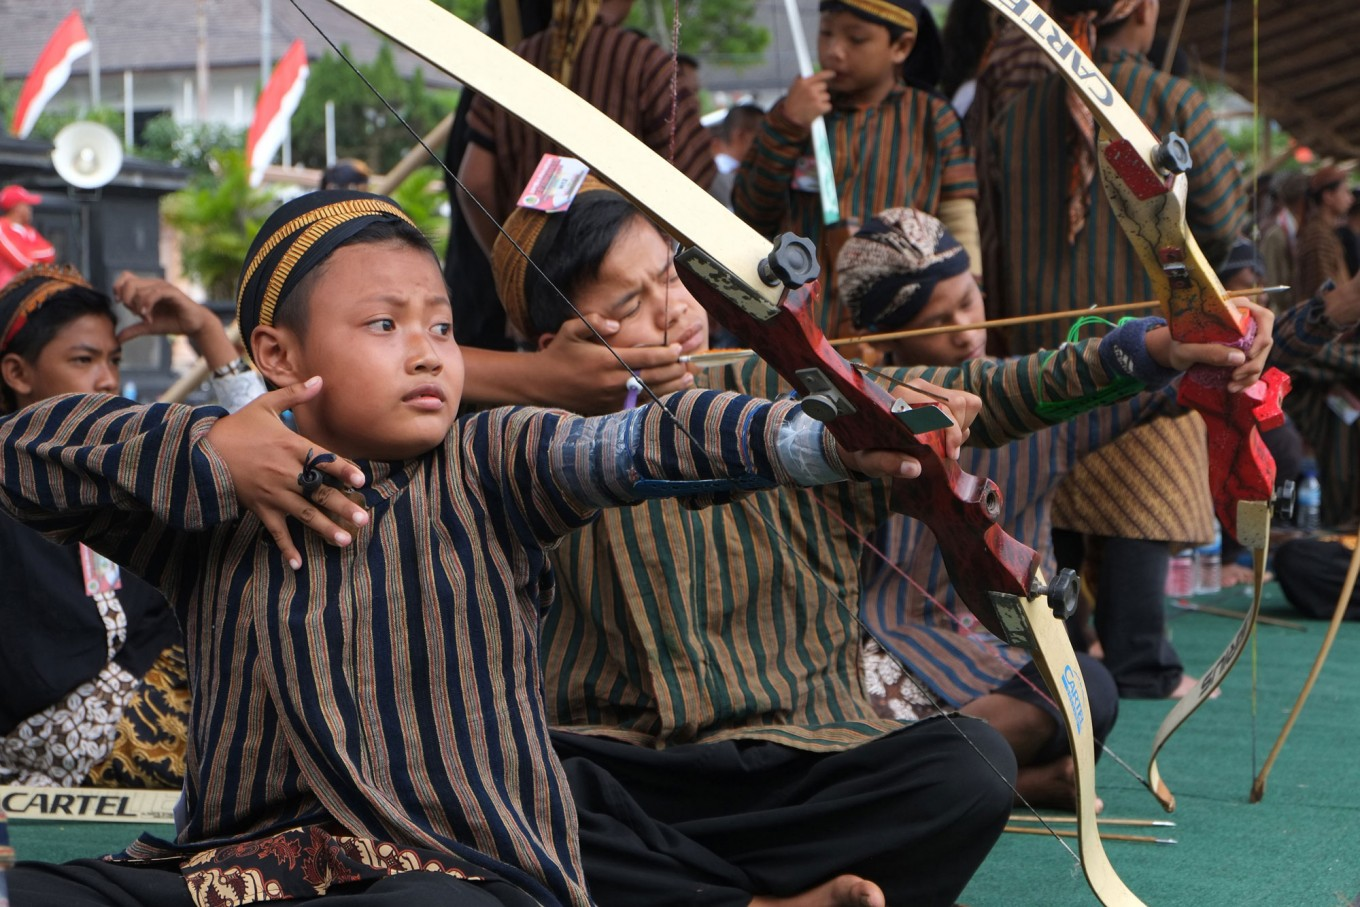 Youngsters continue the jemparingan tradition of their forefathers. JP/ Ganug Nugroho Adi